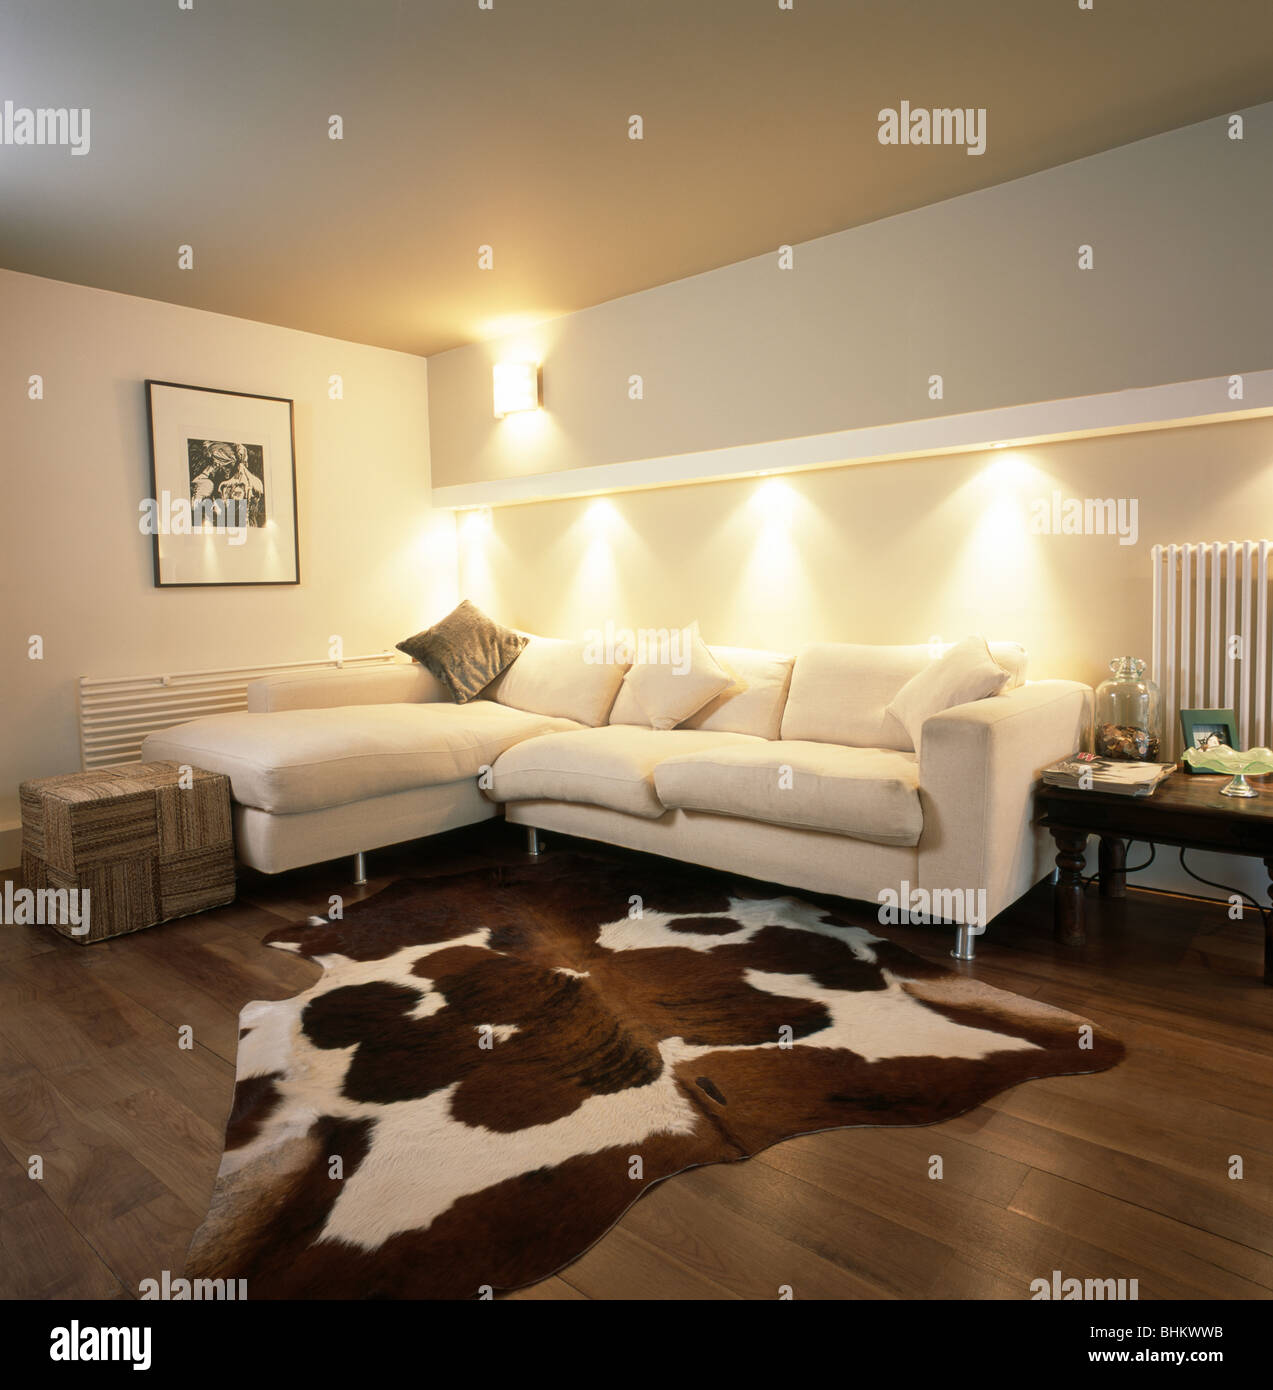 Artificial cowhide rug in modern living room with downlighting